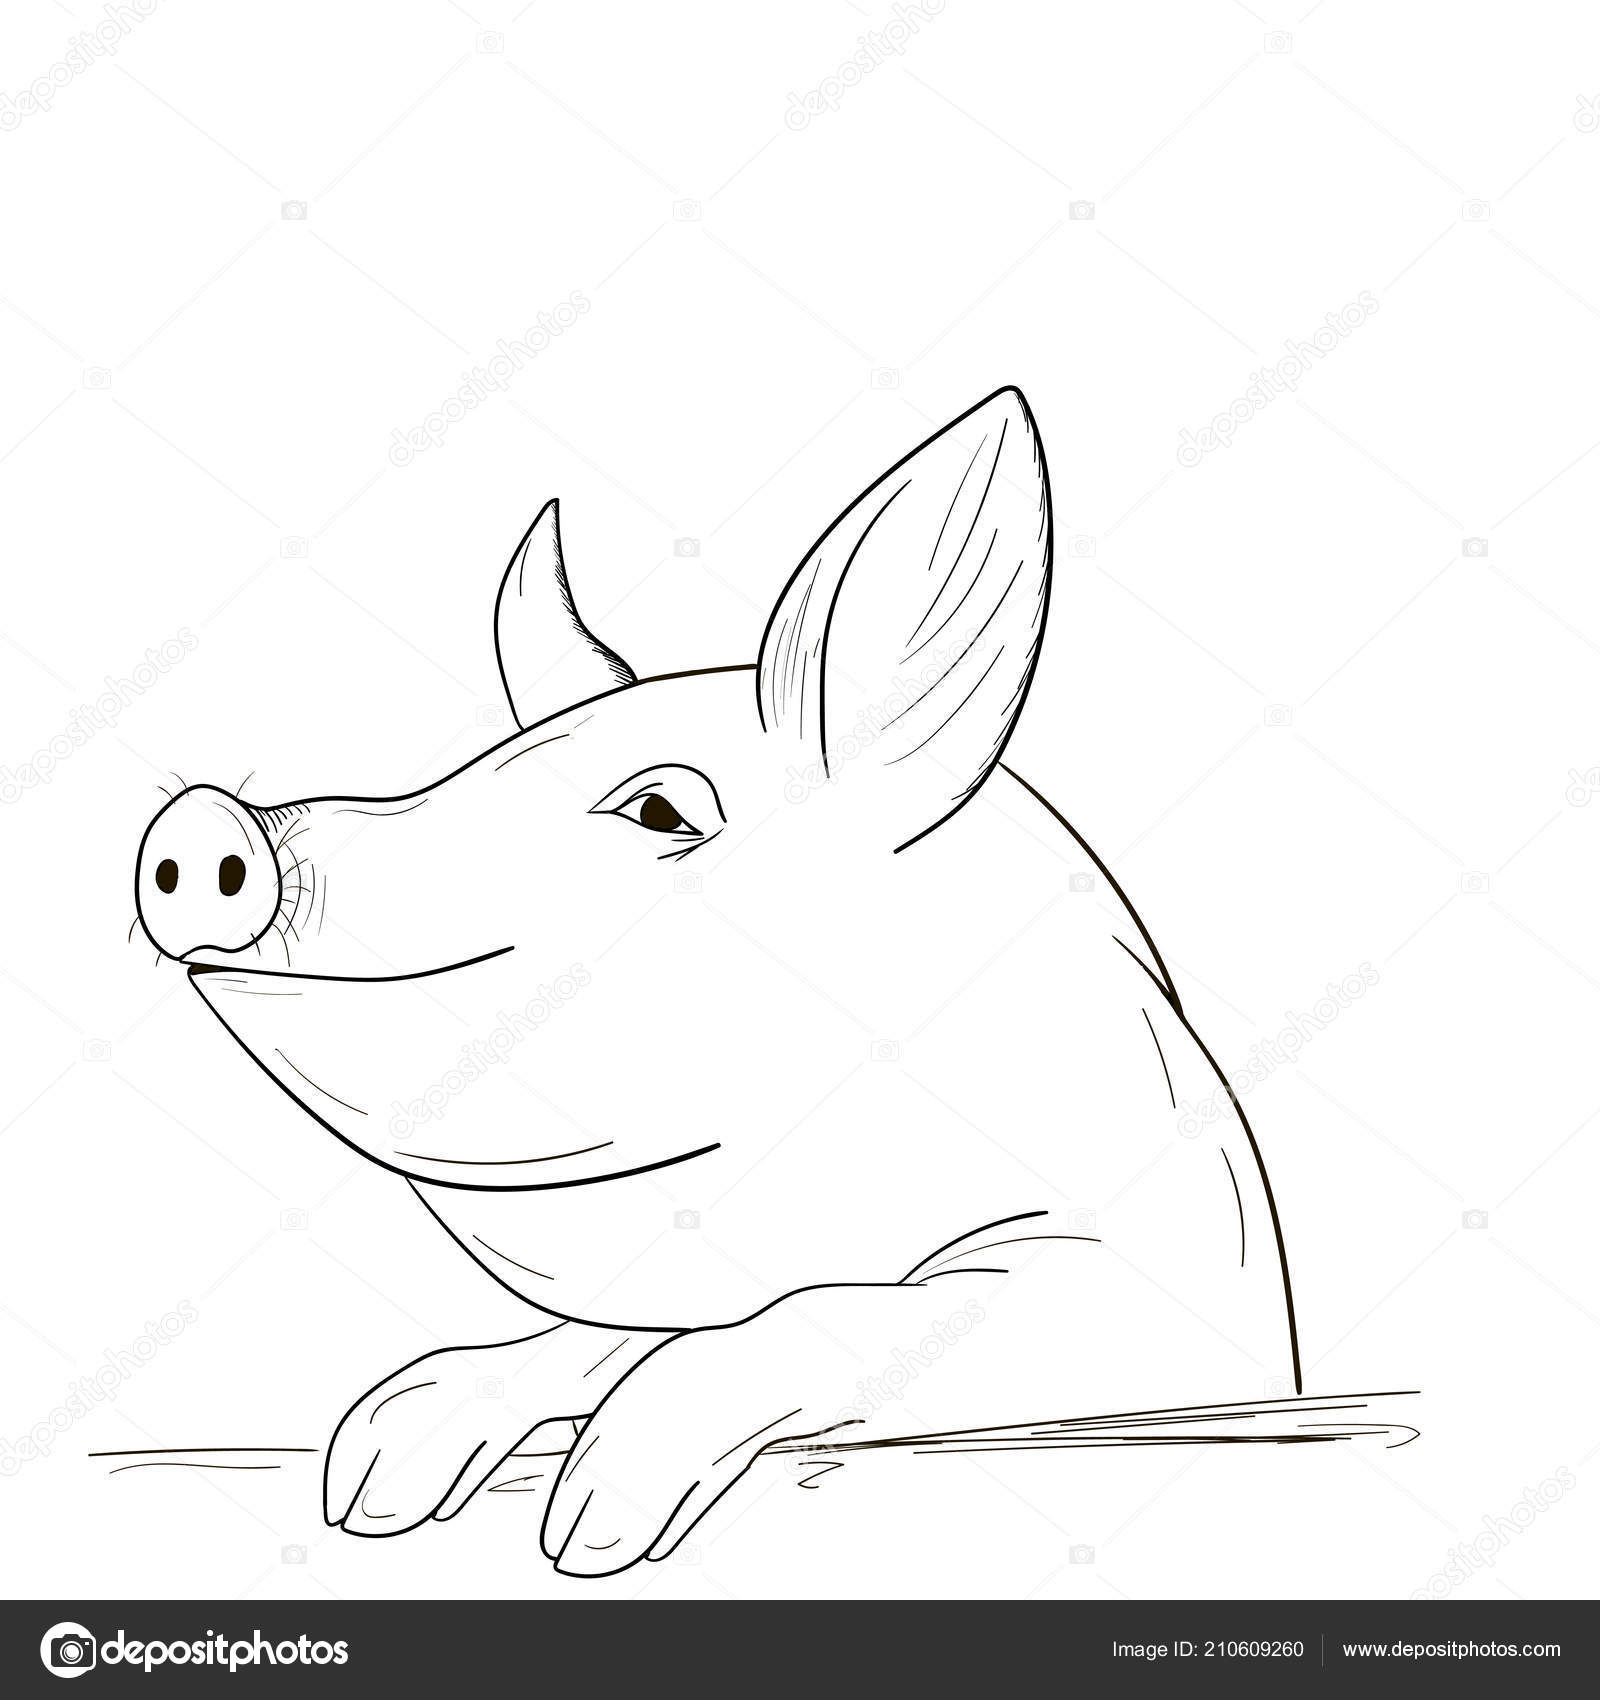 Chinese New Year Pig A Pig Sketch